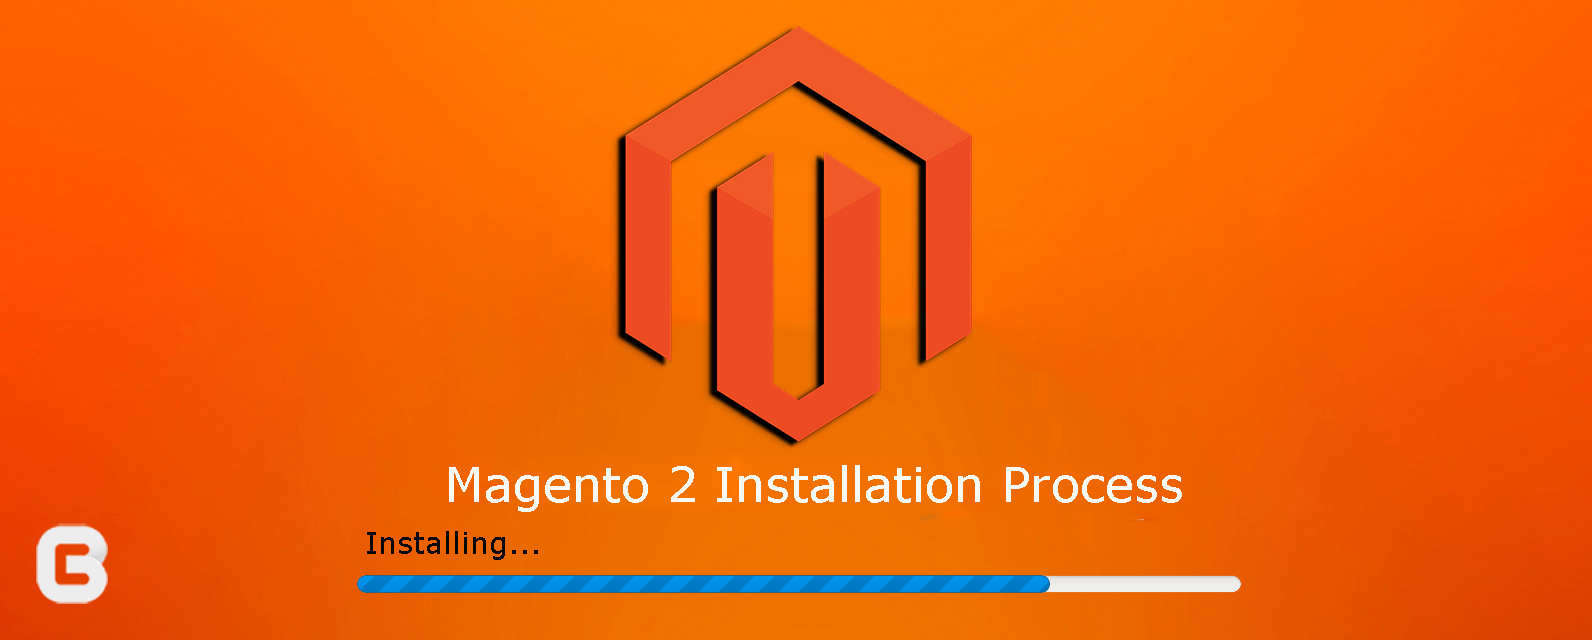 Magento 2 Installation Process